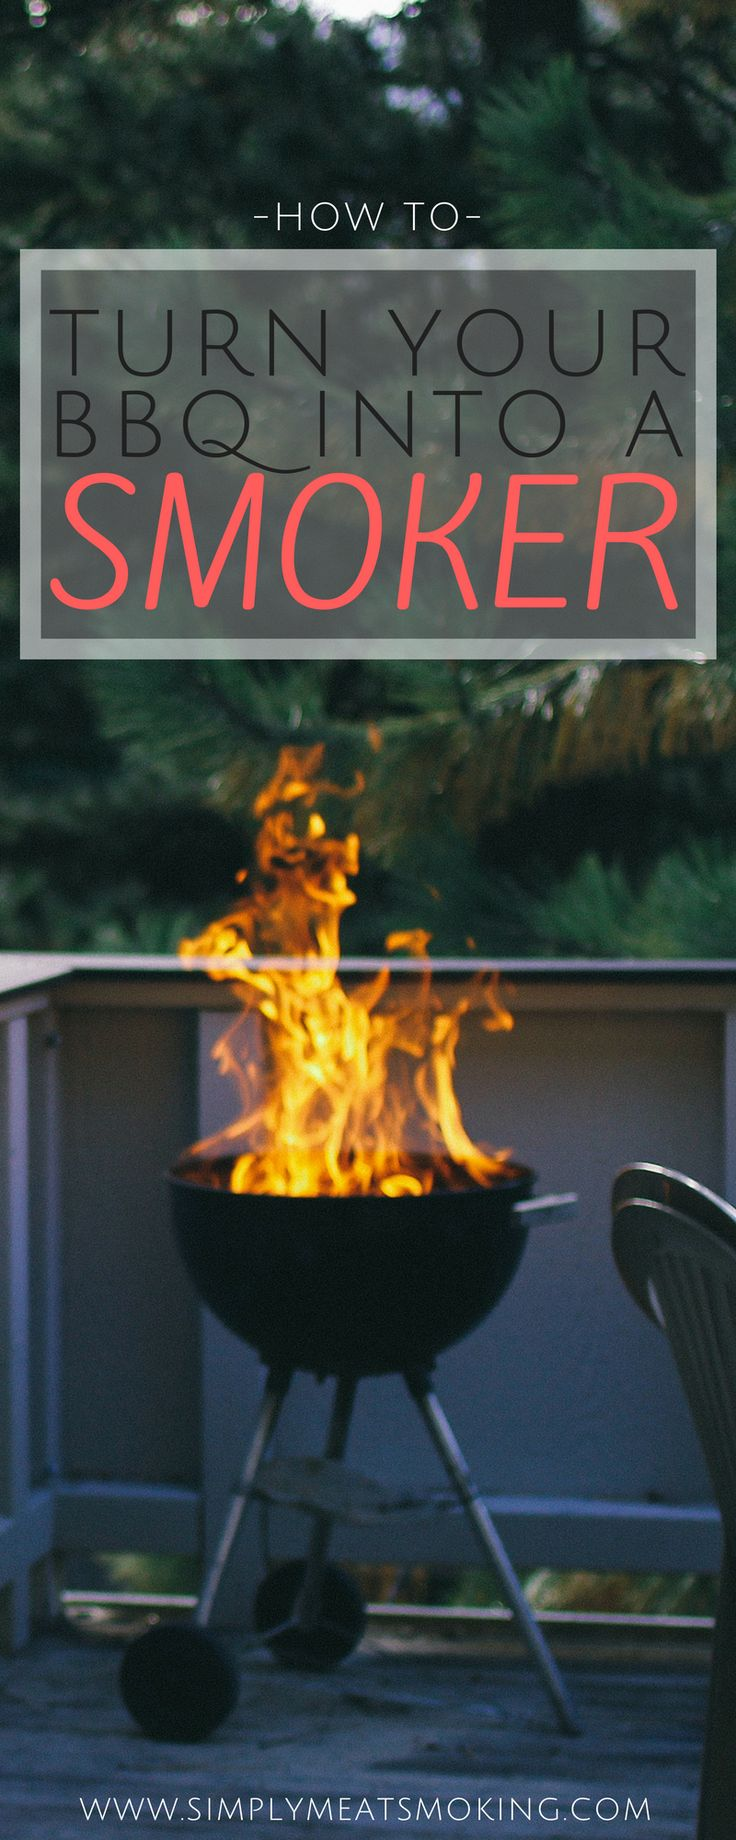 Need to smoke some meat but don't have a smoker? Follow these easy steps to turn your BBQ into a smoker!   Gas BBQ Recipes | Gas Barbecue Recipes | Gas Smoker Recipes | Gas Grill Recipes | Best Gas Grill Recipes | Best Gas Smoker Recipes | Best Gas BBQ Recipes | Best Gas Barbecue Recipes | Best BBQ Food | BBQ Inspiration | Barbecue Inspiration | Grilling Inspiration | How To | Inspiration | #bbq #barbecue #grilling #grill #bbqlife